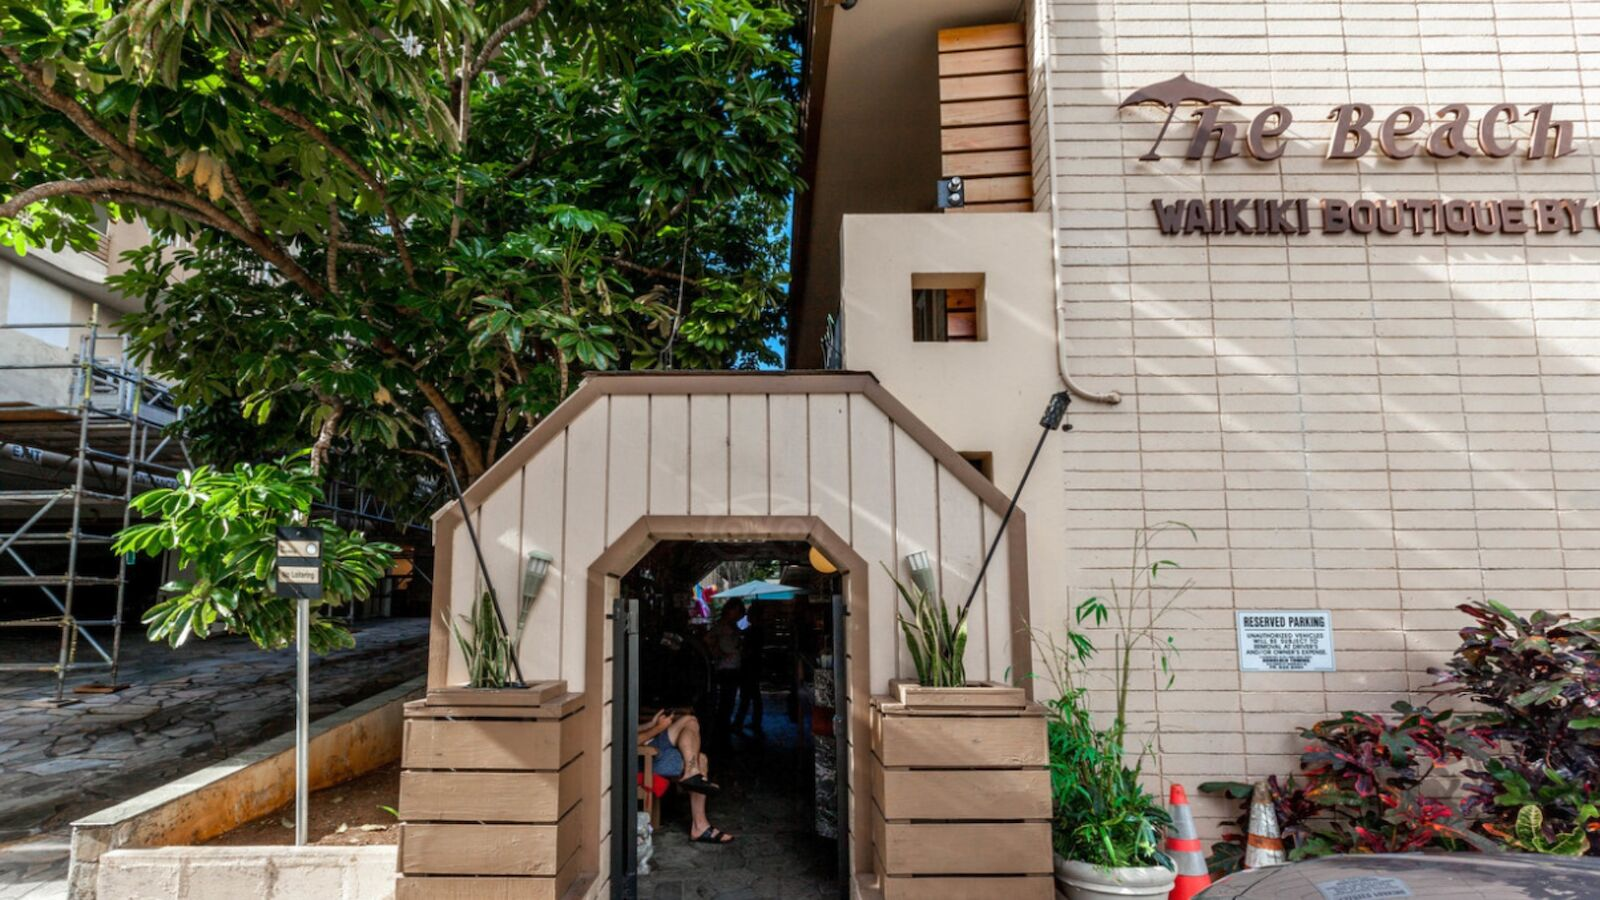 Waikiki Backpackers Hostel, Oahu